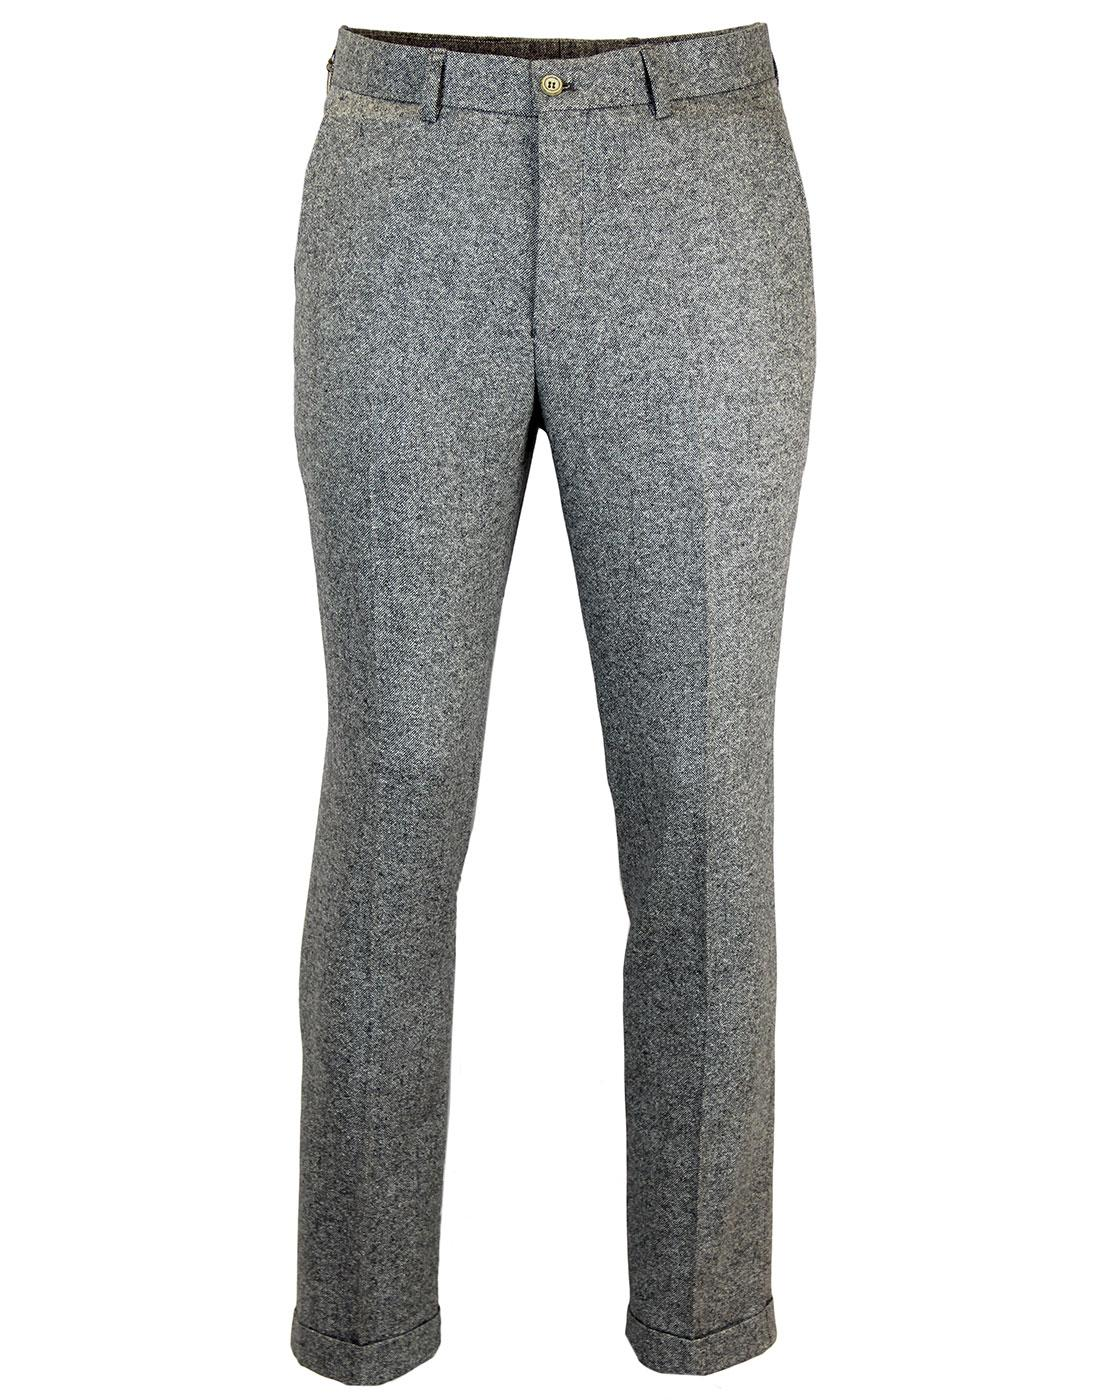 GIBSON LONDON Mod Donegal Flat Front Trousers (G)